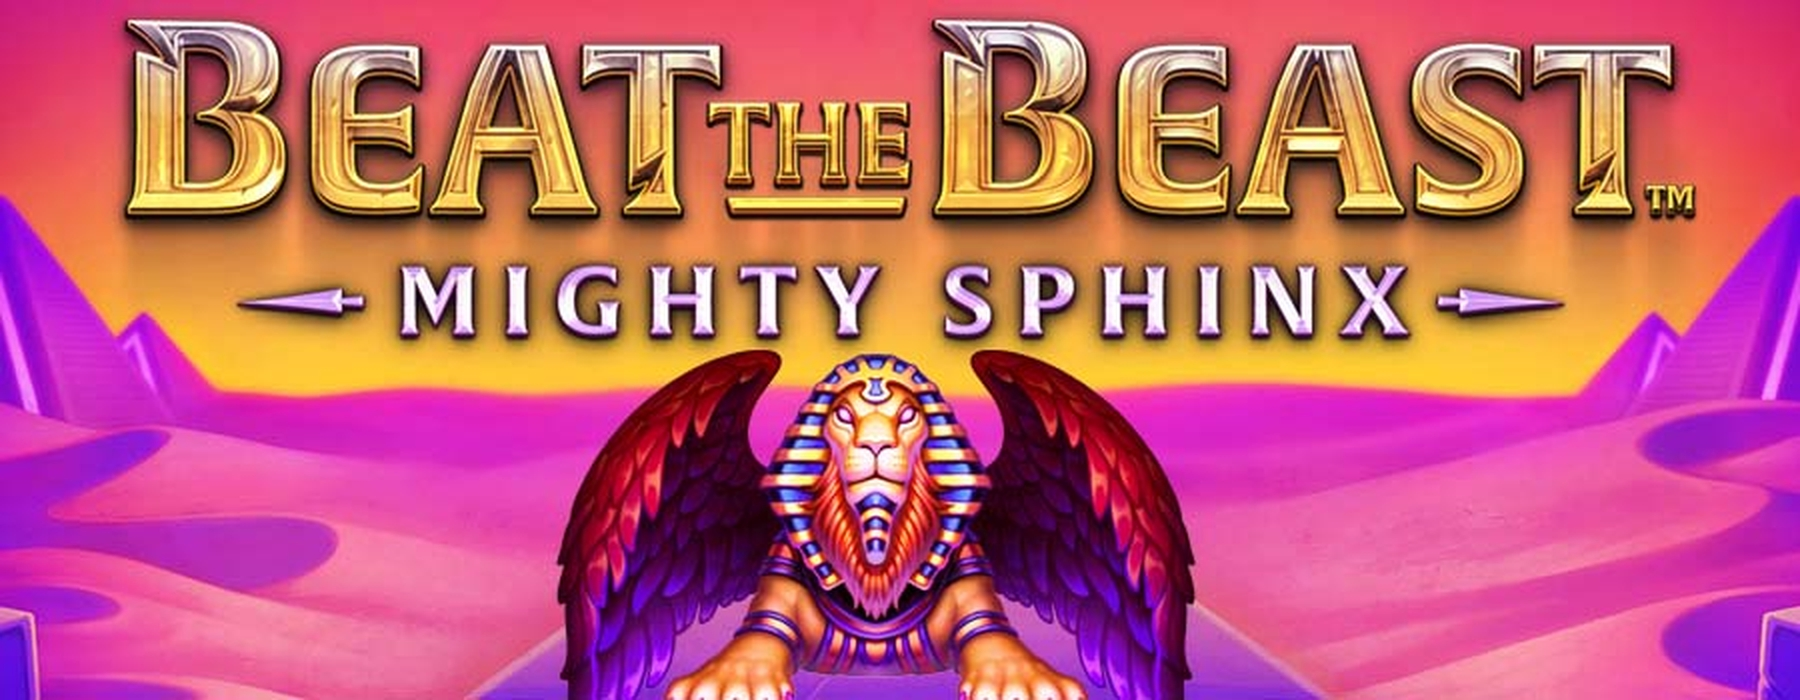 Beat the Beast Mighty Sphinx Online Slot Demo Game by Thunderkick